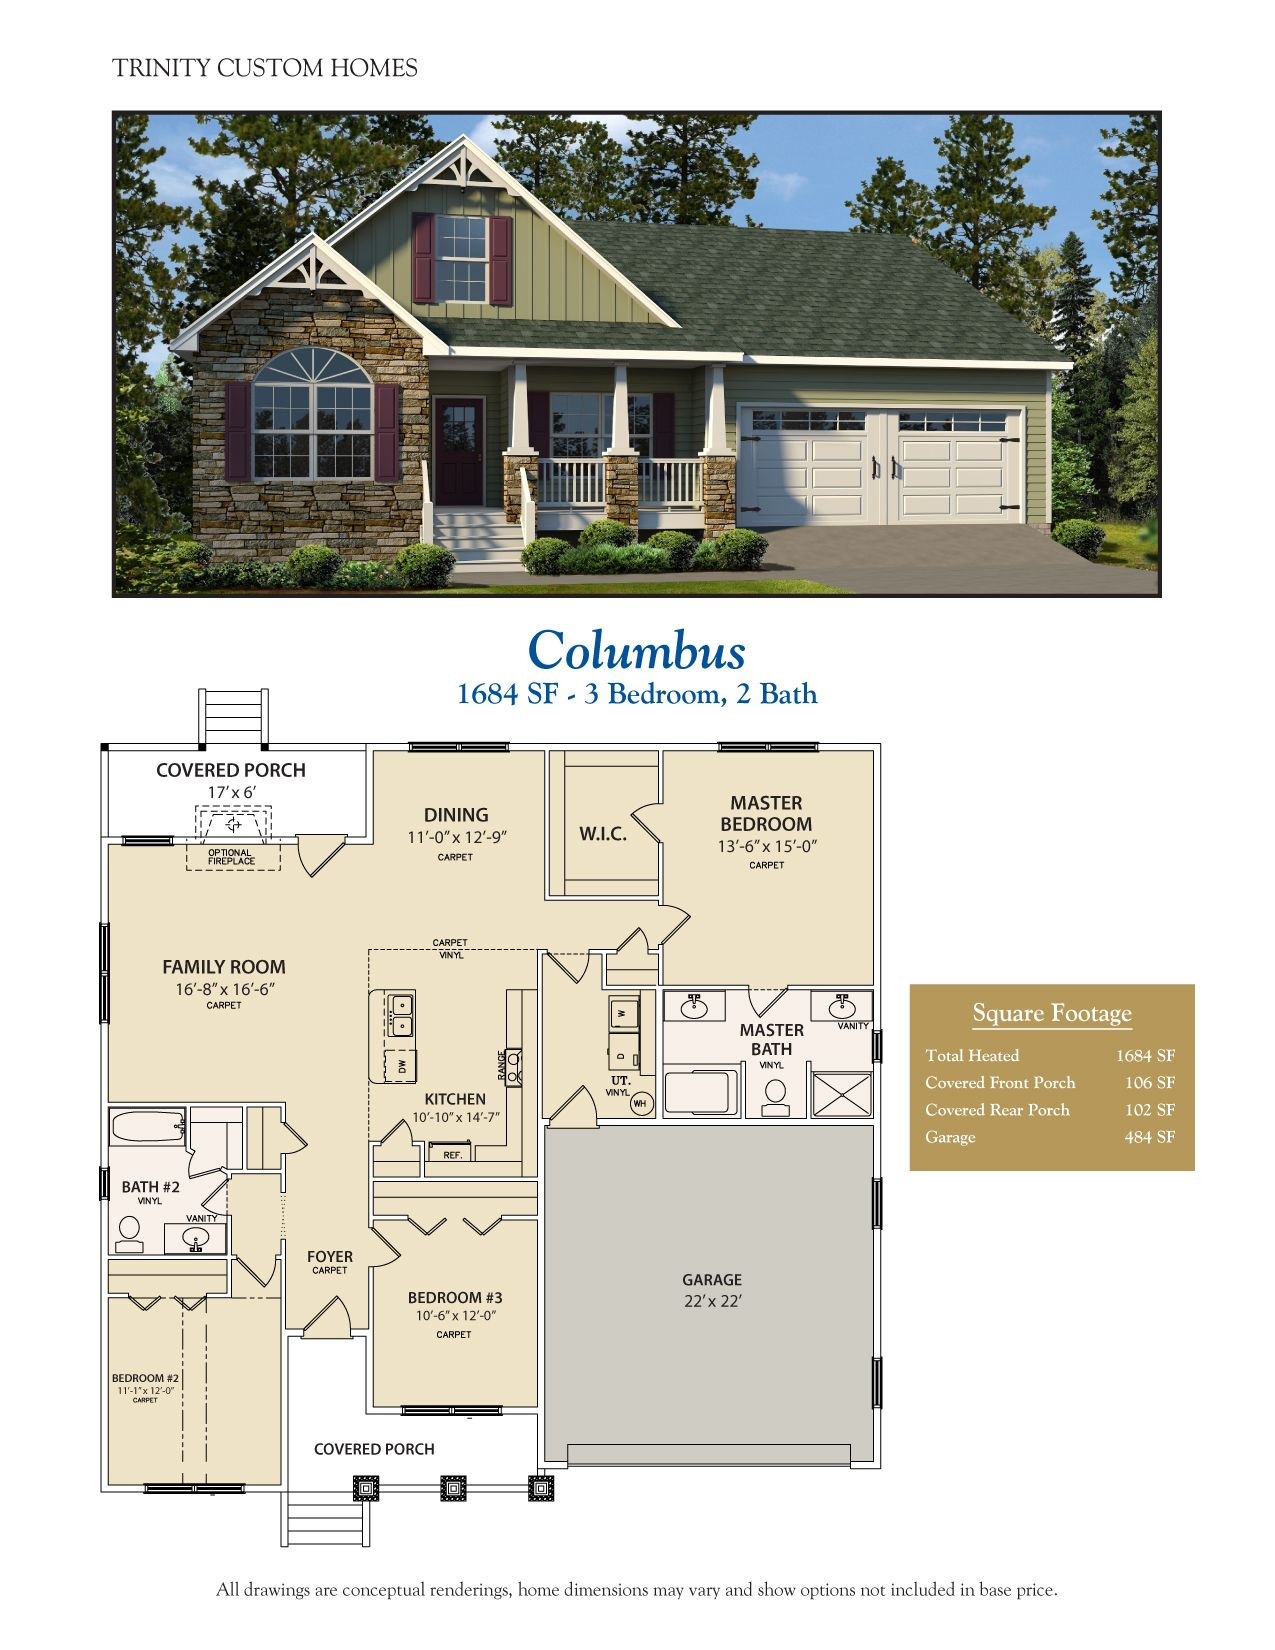 Take A Look At All Of Trinity Custom Homes Georgia Floor Plans Here We Have A Lot To Offer So Contact Us Today House Blueprints House Plans Building A House